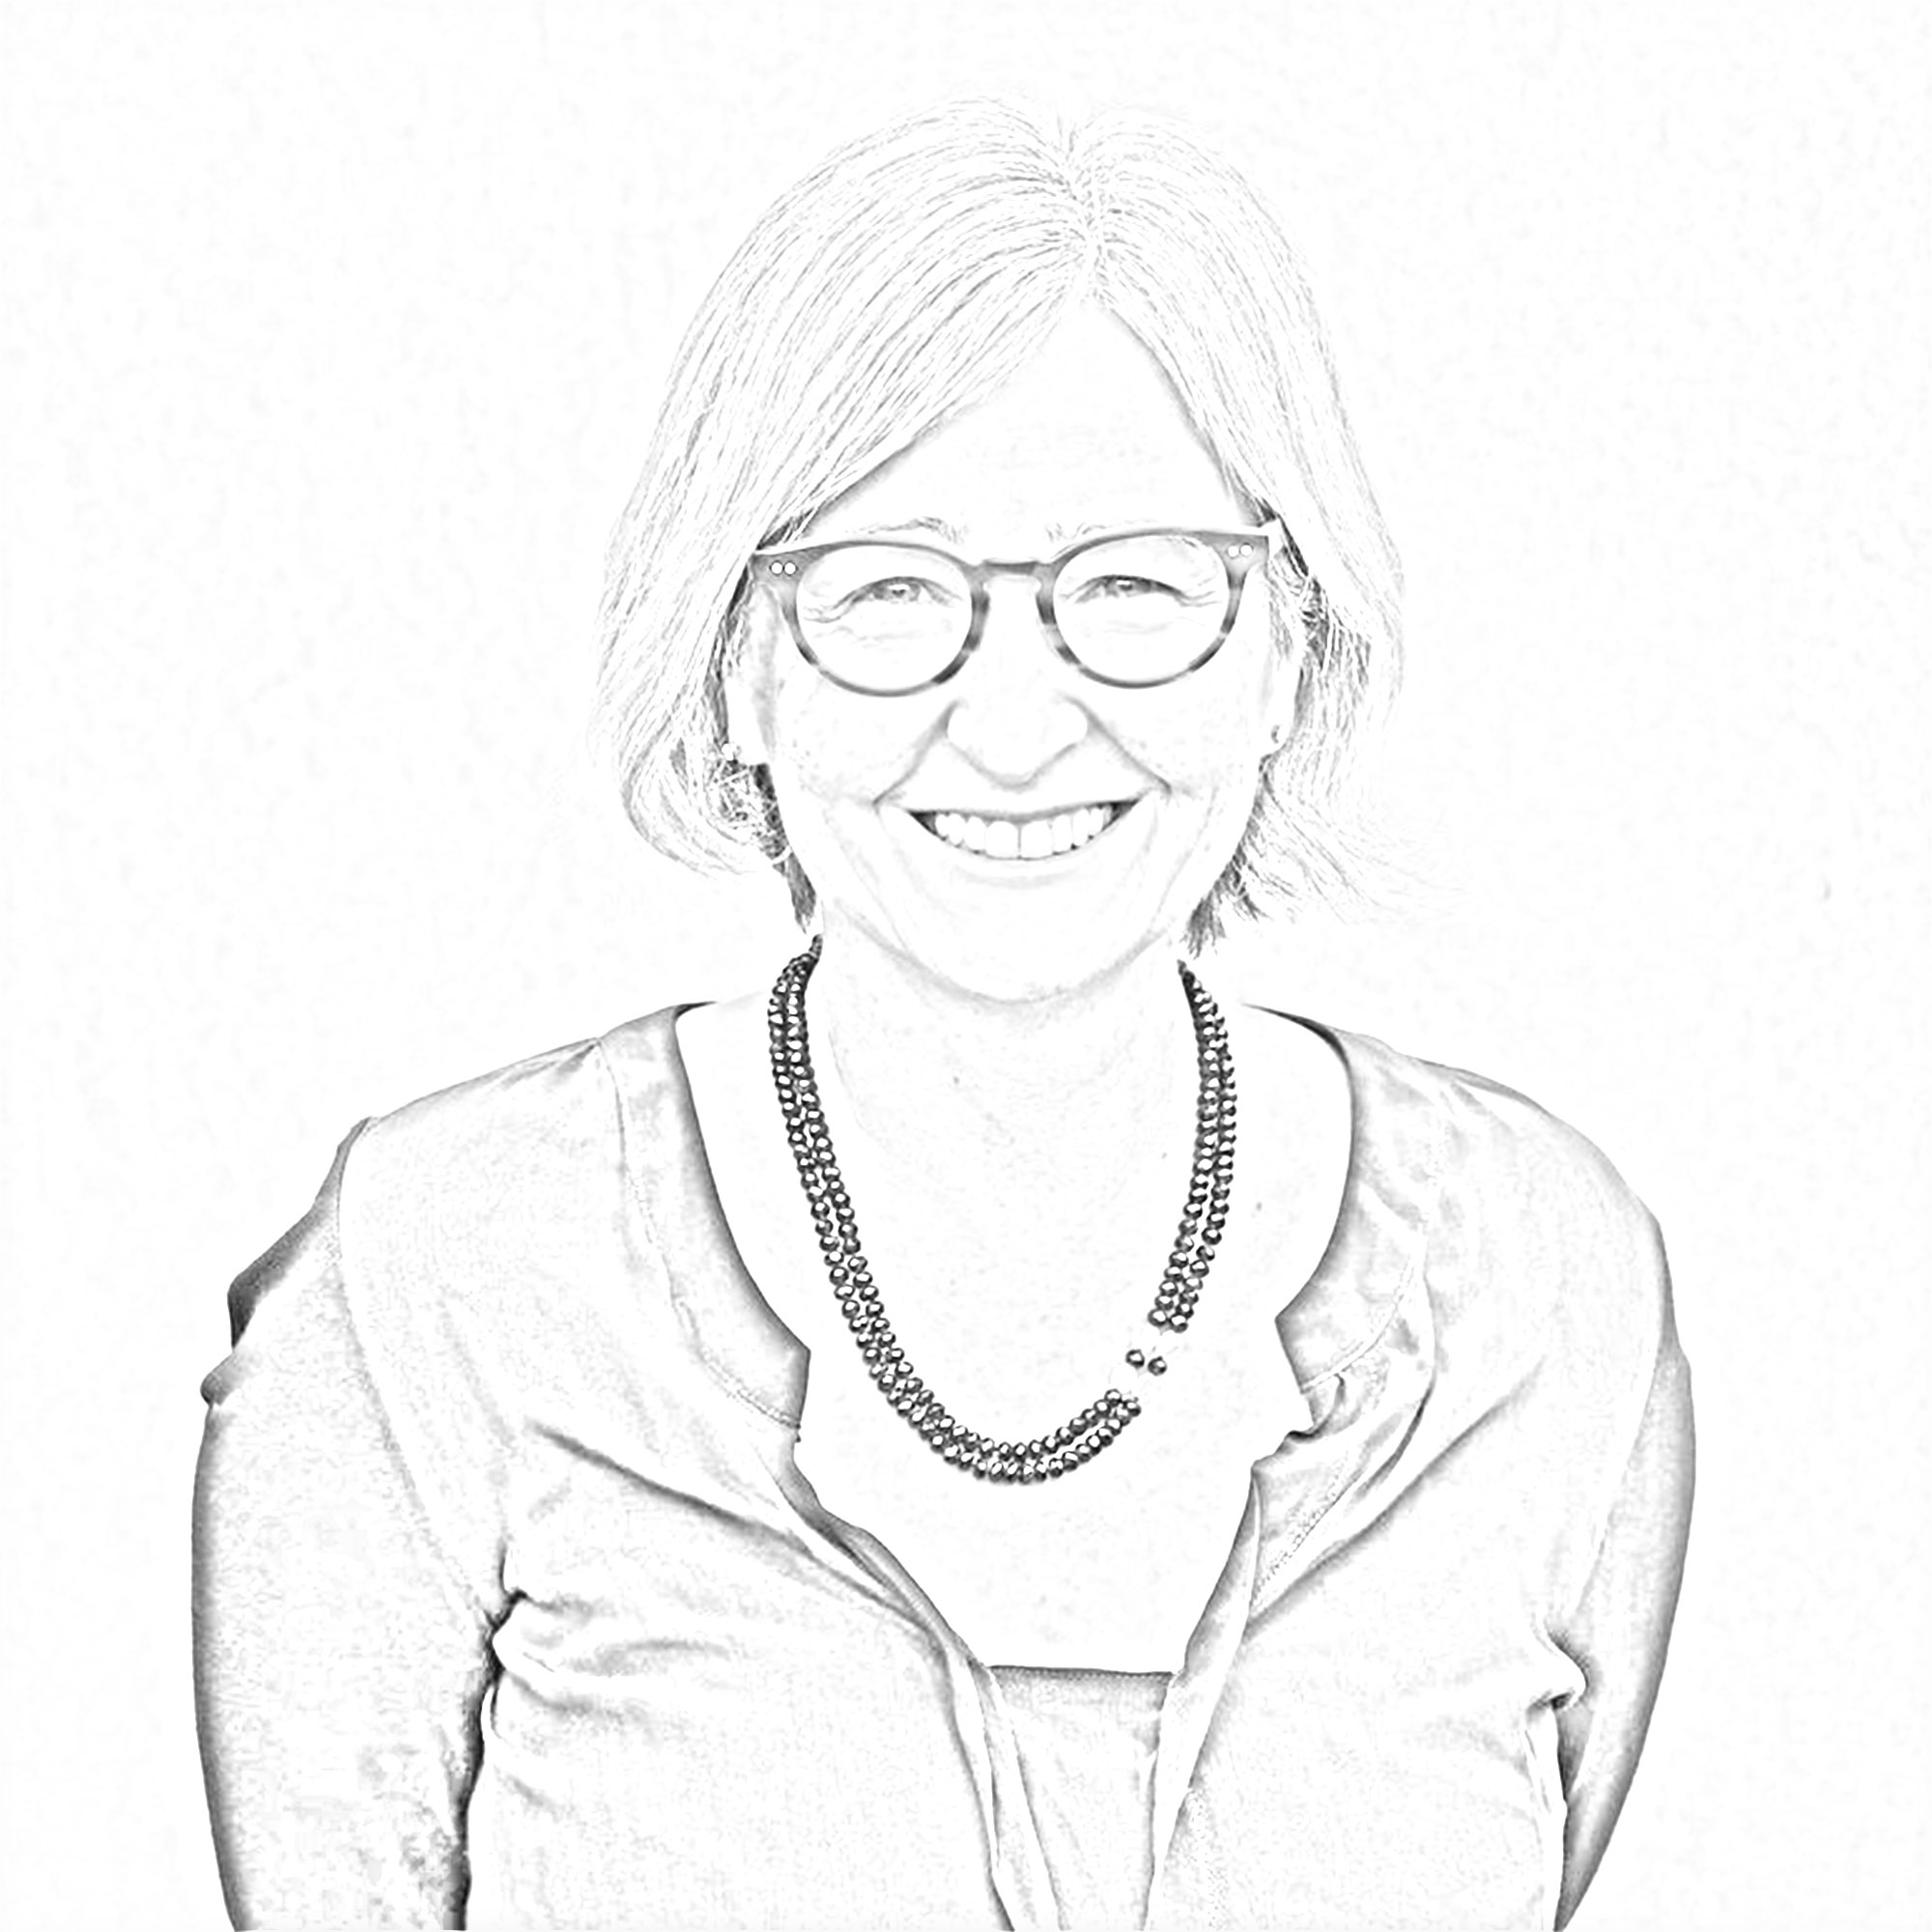 GABRIELLE TOURELLEPartner, People & Culture - STRATEGIC PROBLEM SOLVERGabrielle is a creative blend of PR and HR. She has run PR agencies and managed countless campaigns for multinational clients. Gabrielle is a compassionate and strategic creative thinker, with a wise and pragmatic bent to solve modern workplace issues. Her blend of communications and people skills give her a strong perspective from which to solve the industry's challenge of attracting and developing great people. She is passionate about driving a healthy culture in which people can thrive and find connection to their work and the people they work with. Read More